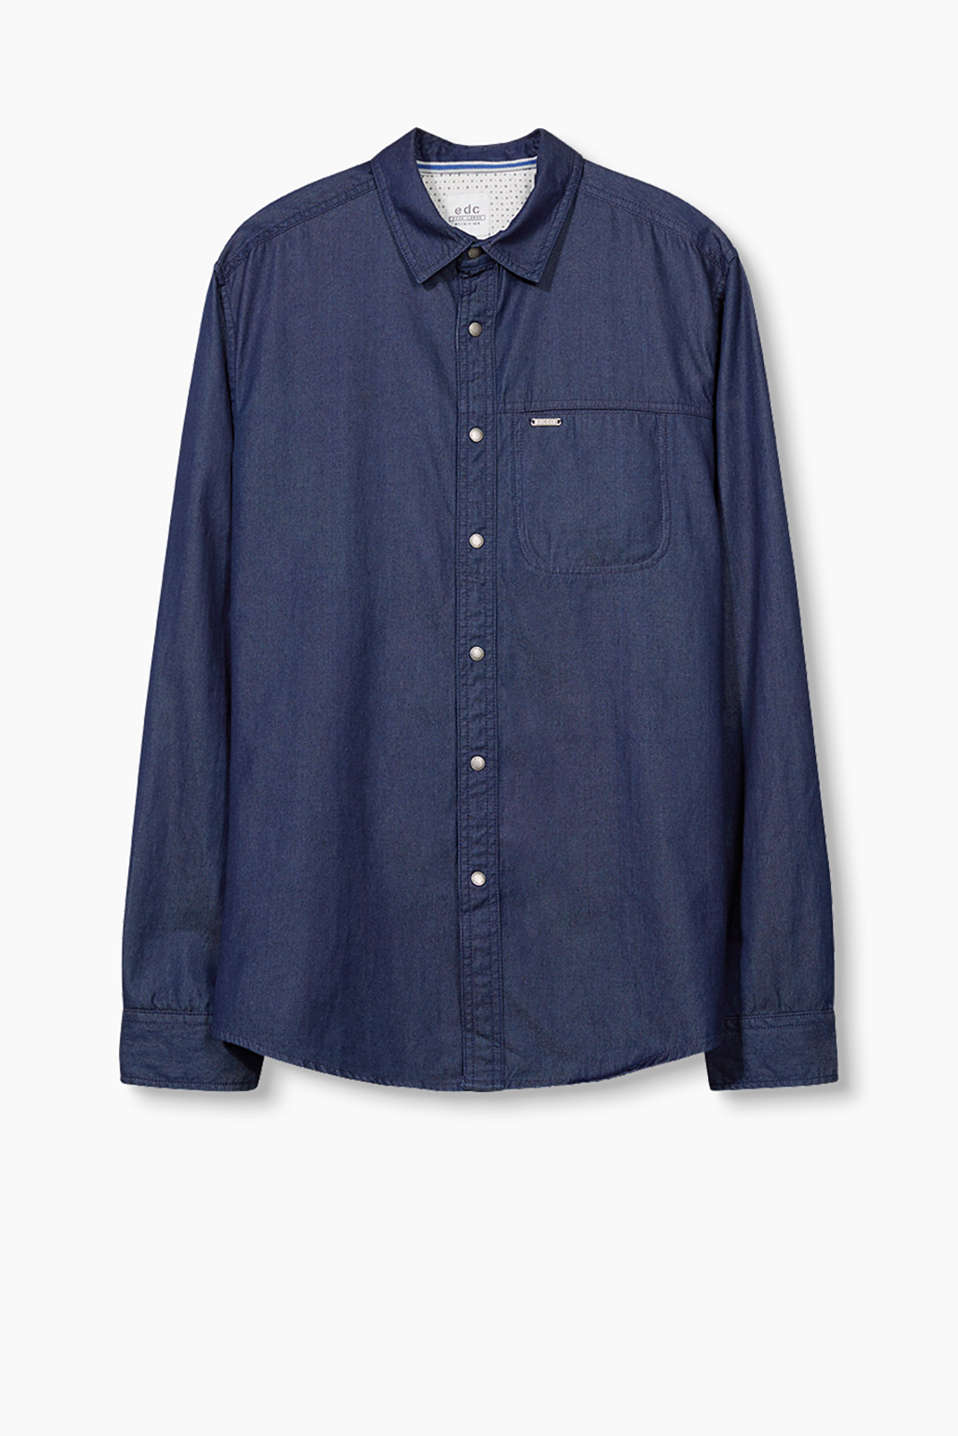 Cotton denim shirt with logo press studs